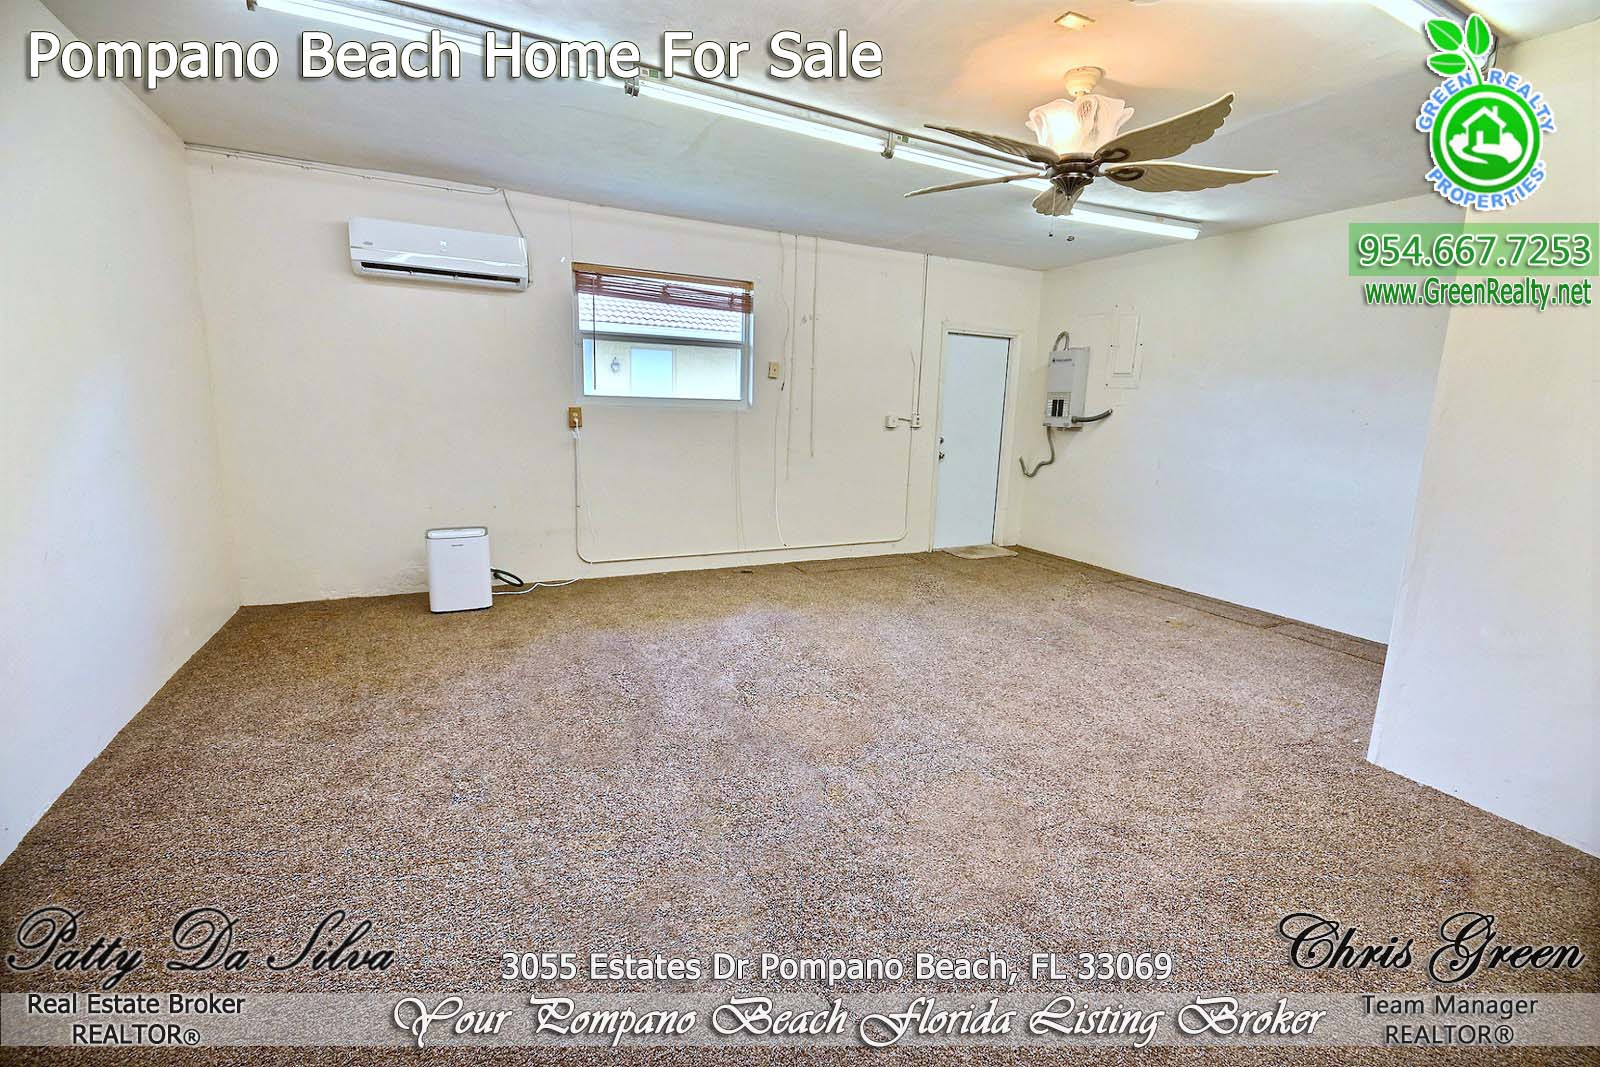 26 Real Estate For Sale in Pompano Beach (2)